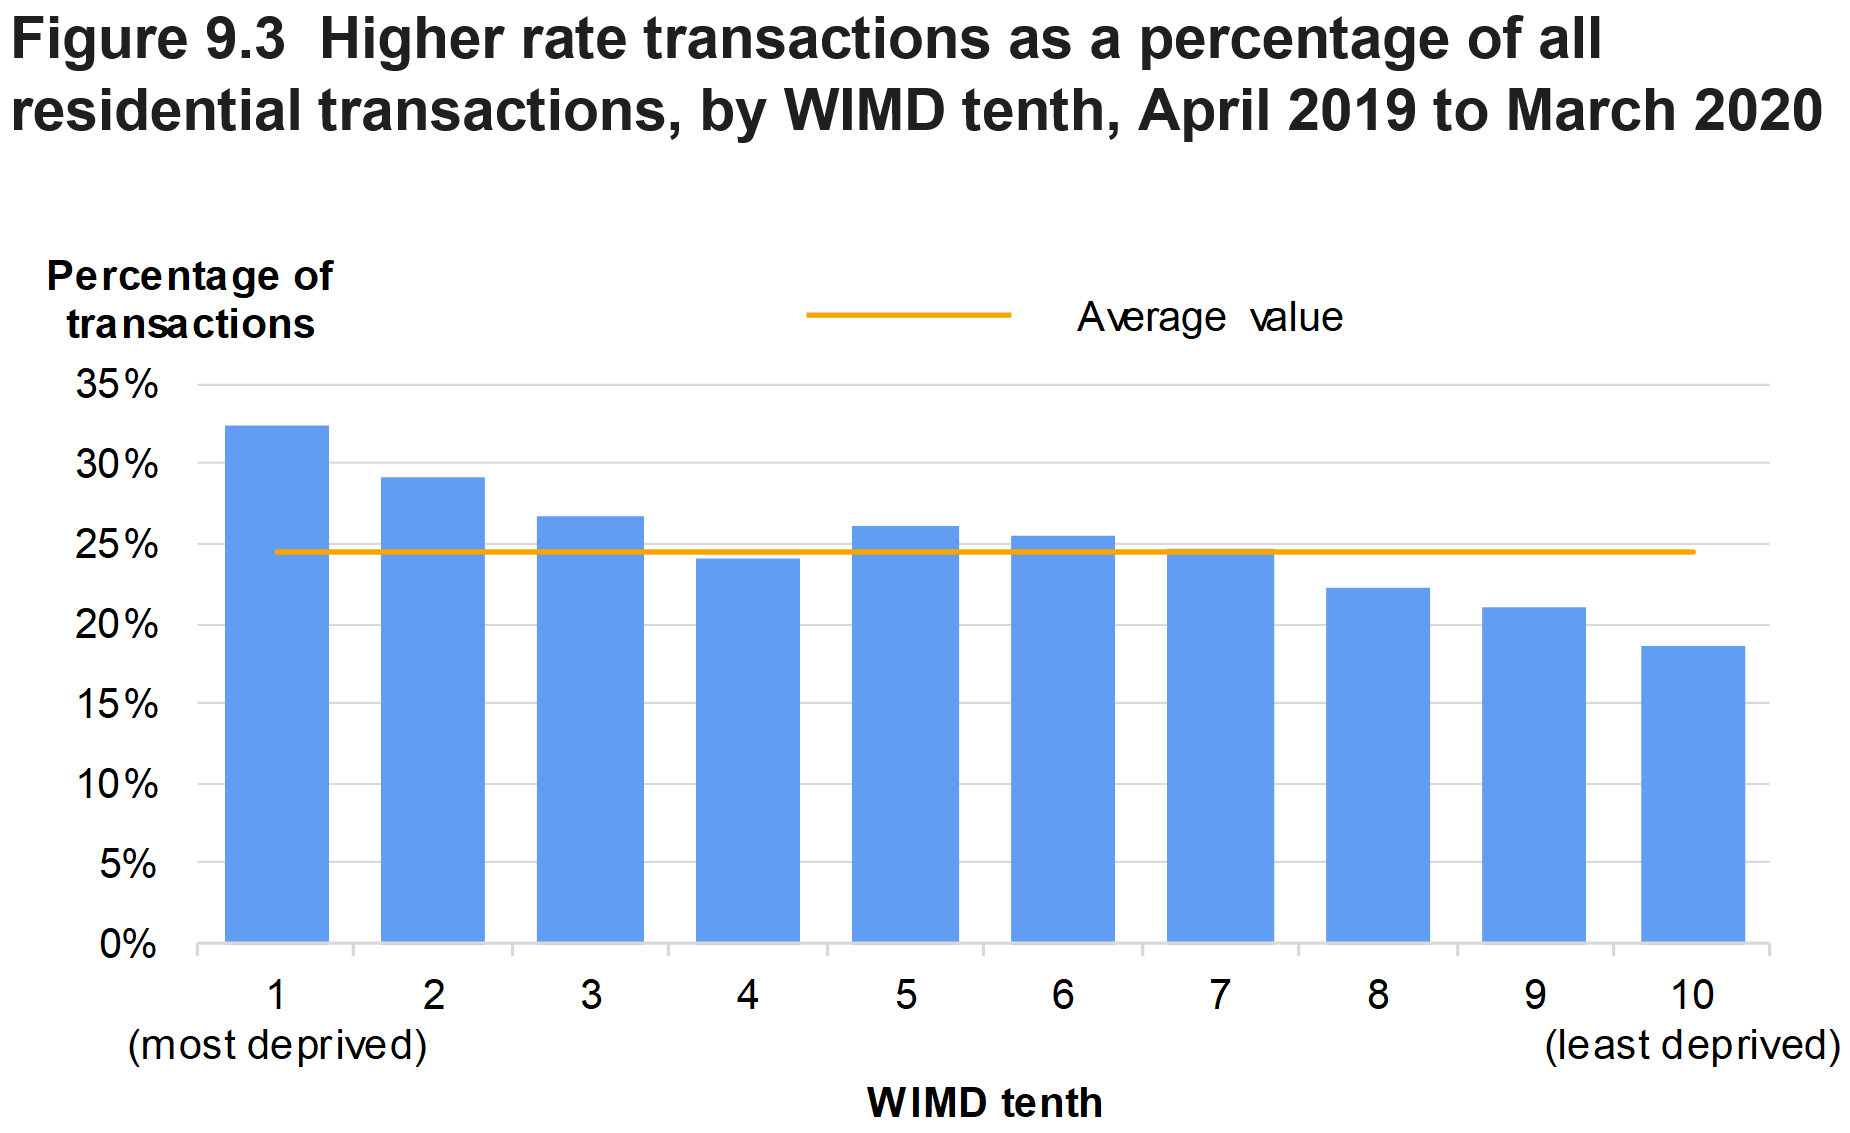 Figure 9.3 shows higher rate transactions as a percentage of all residential transactions, by WIMD tenth, for April 2019 to March 2020. An average value over all WIMD tenths is also presented.